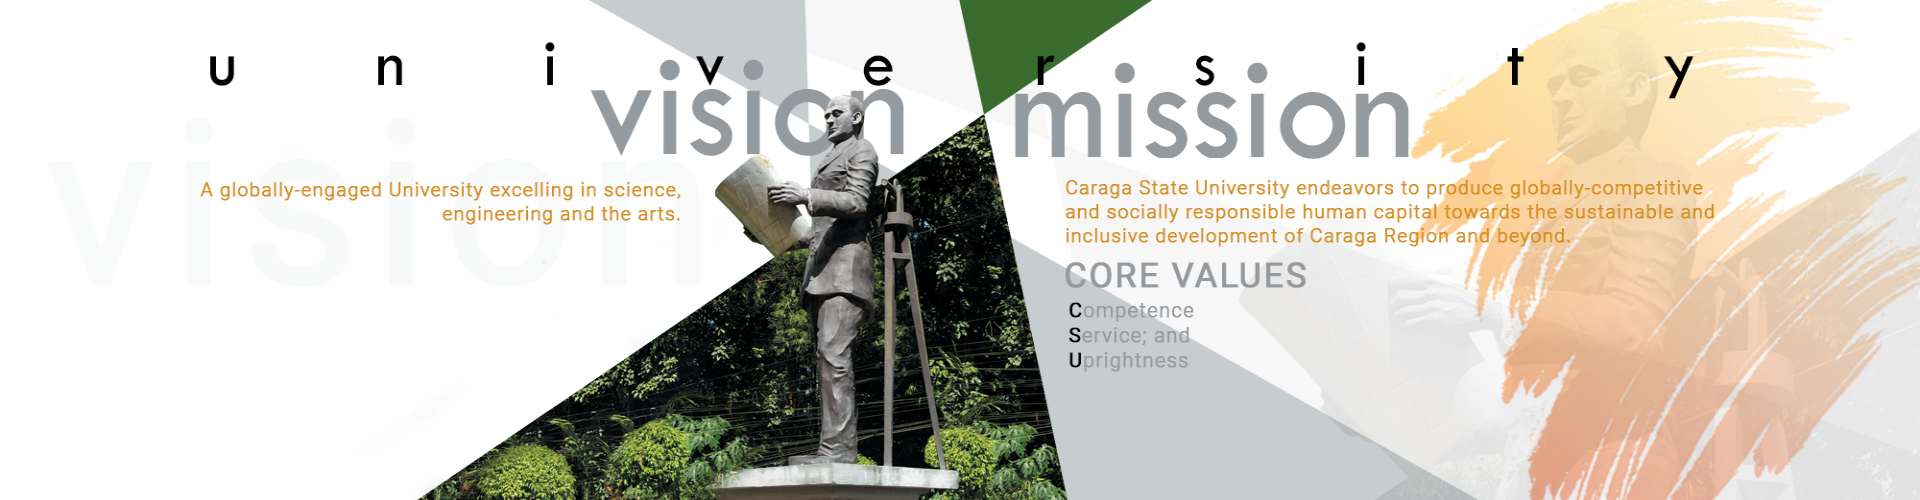 CSU Vision, Mission and Core Values